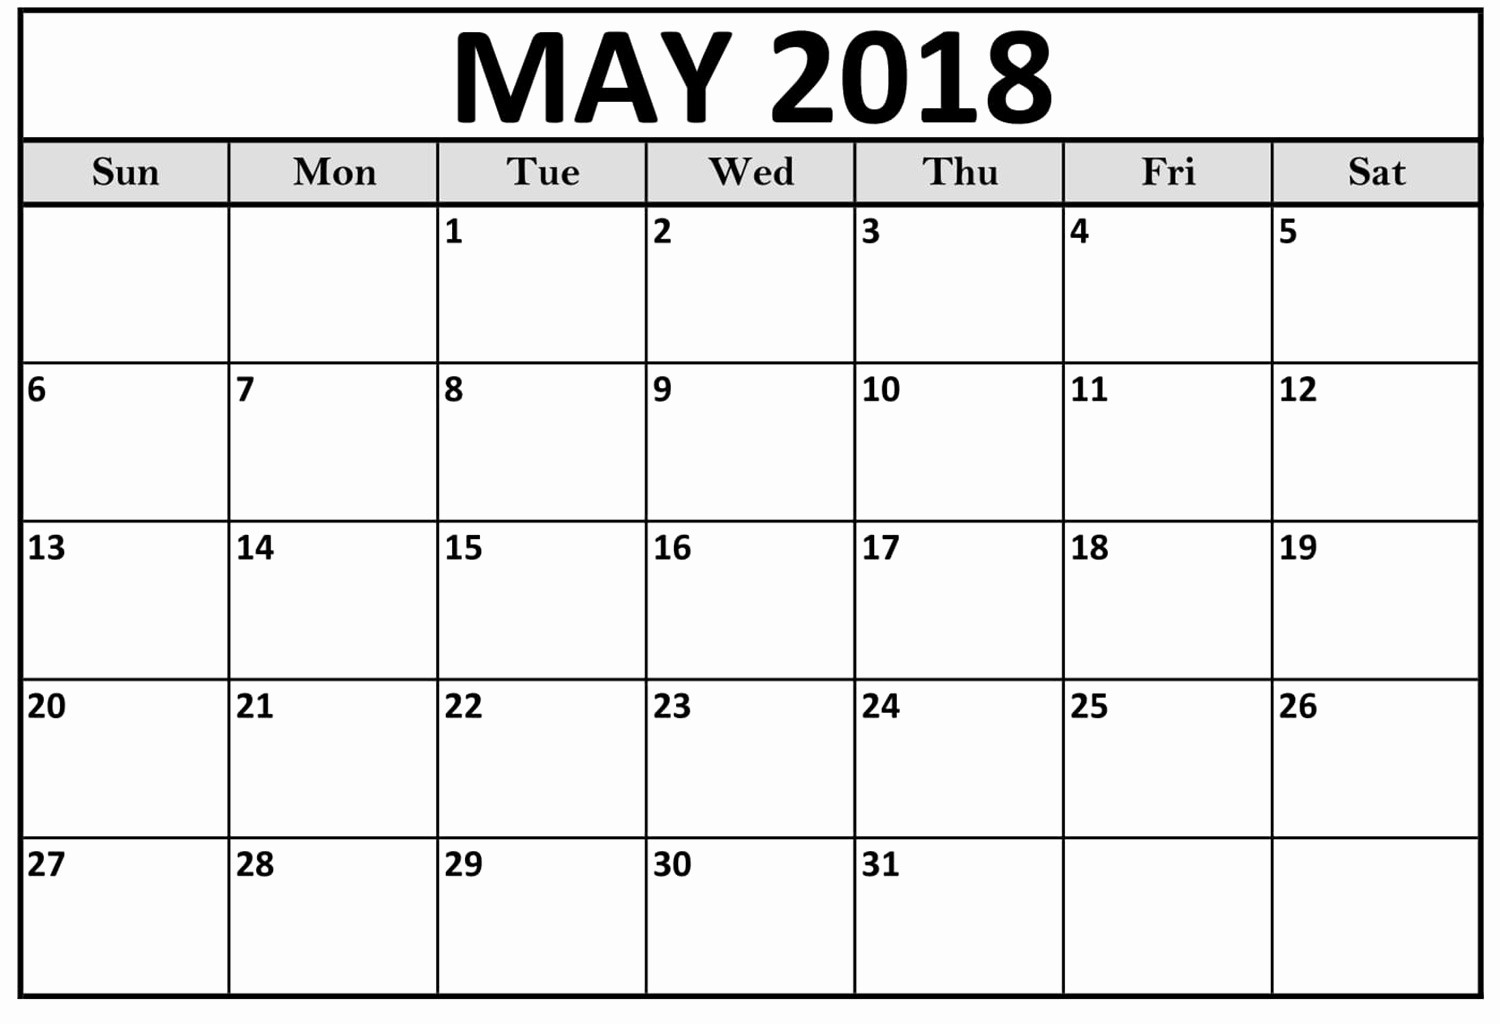 Blank May 2018 Calendar Printable Fresh May 2018 Blank Templates Calendar